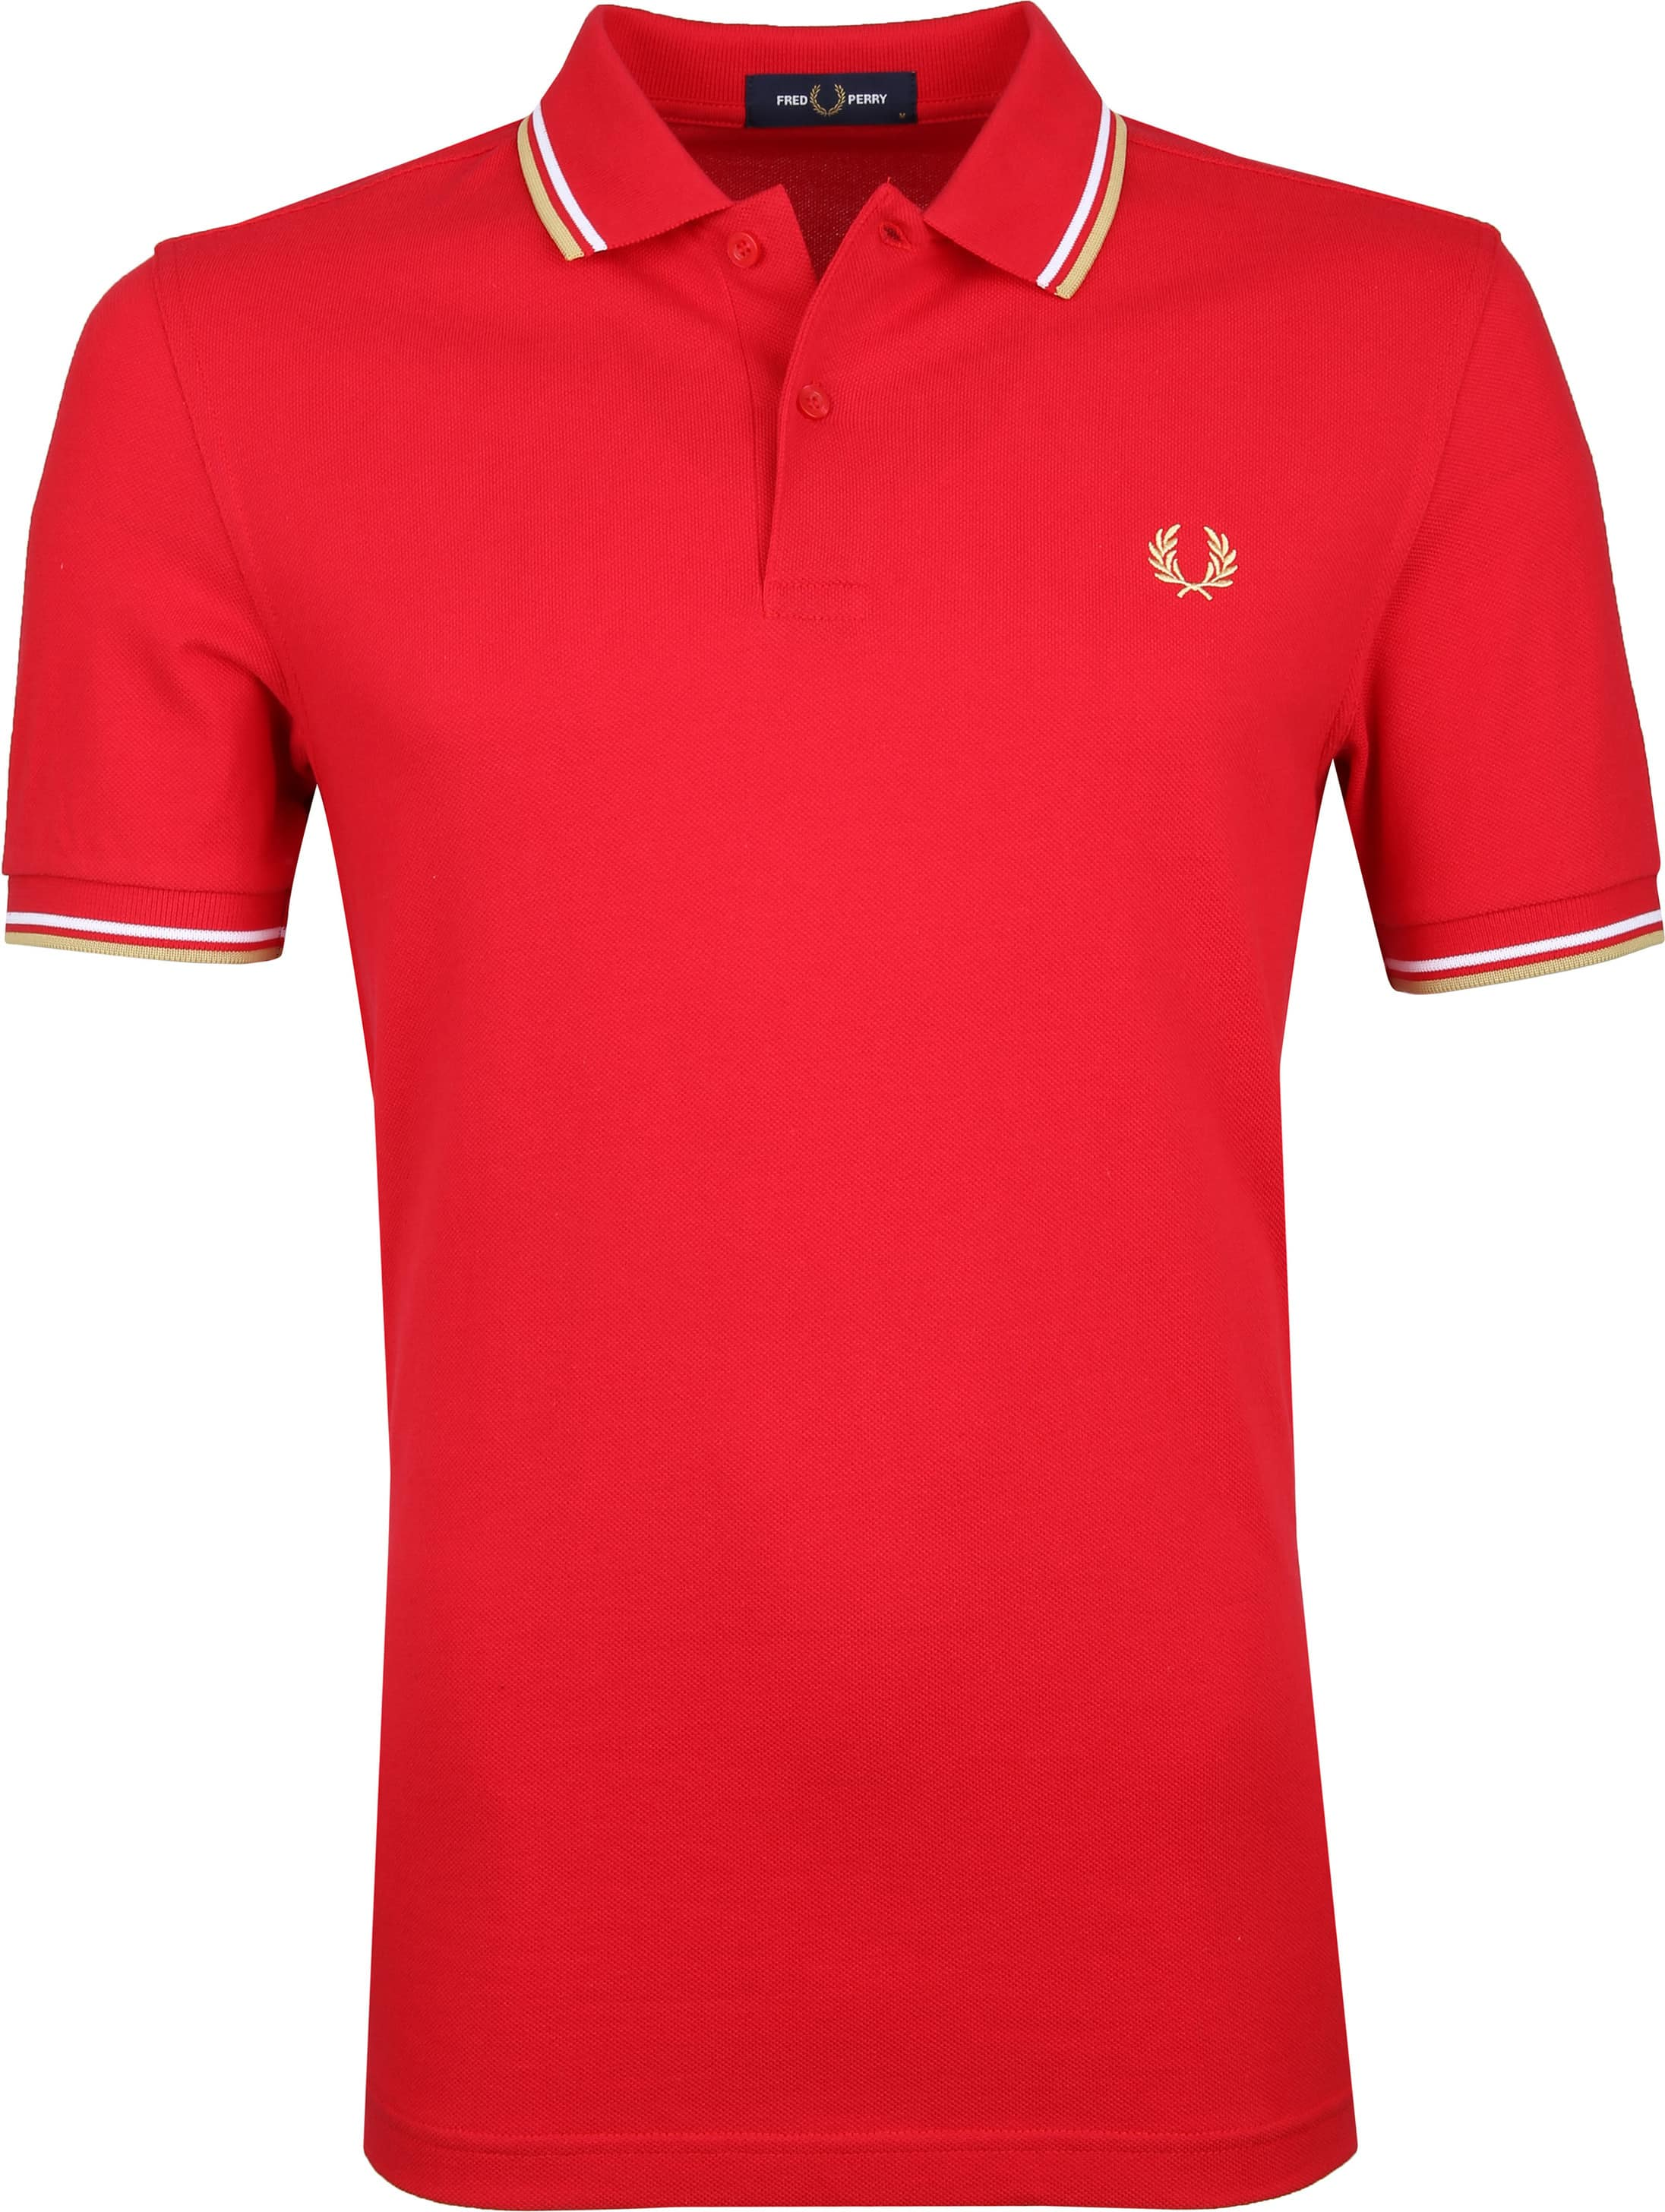 Fred Perry Poloshirt Rot J95